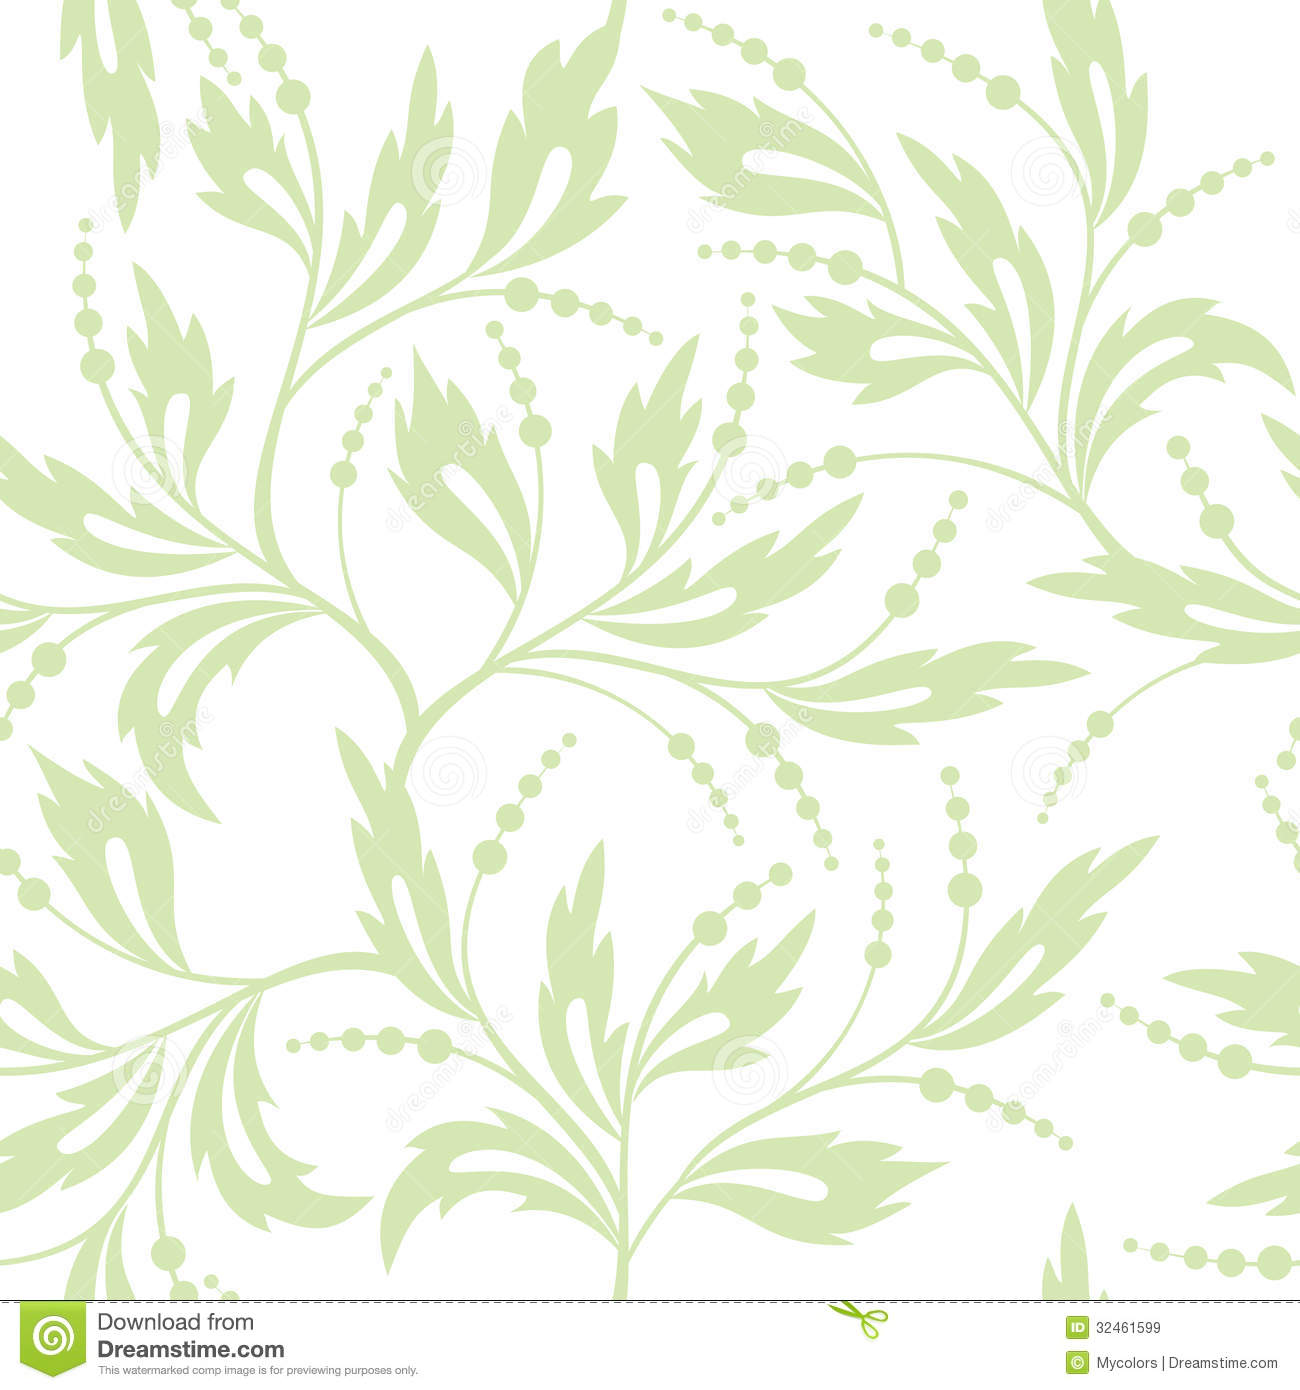 Floral White And Light Green Seamless Pattern Stock Vector ...